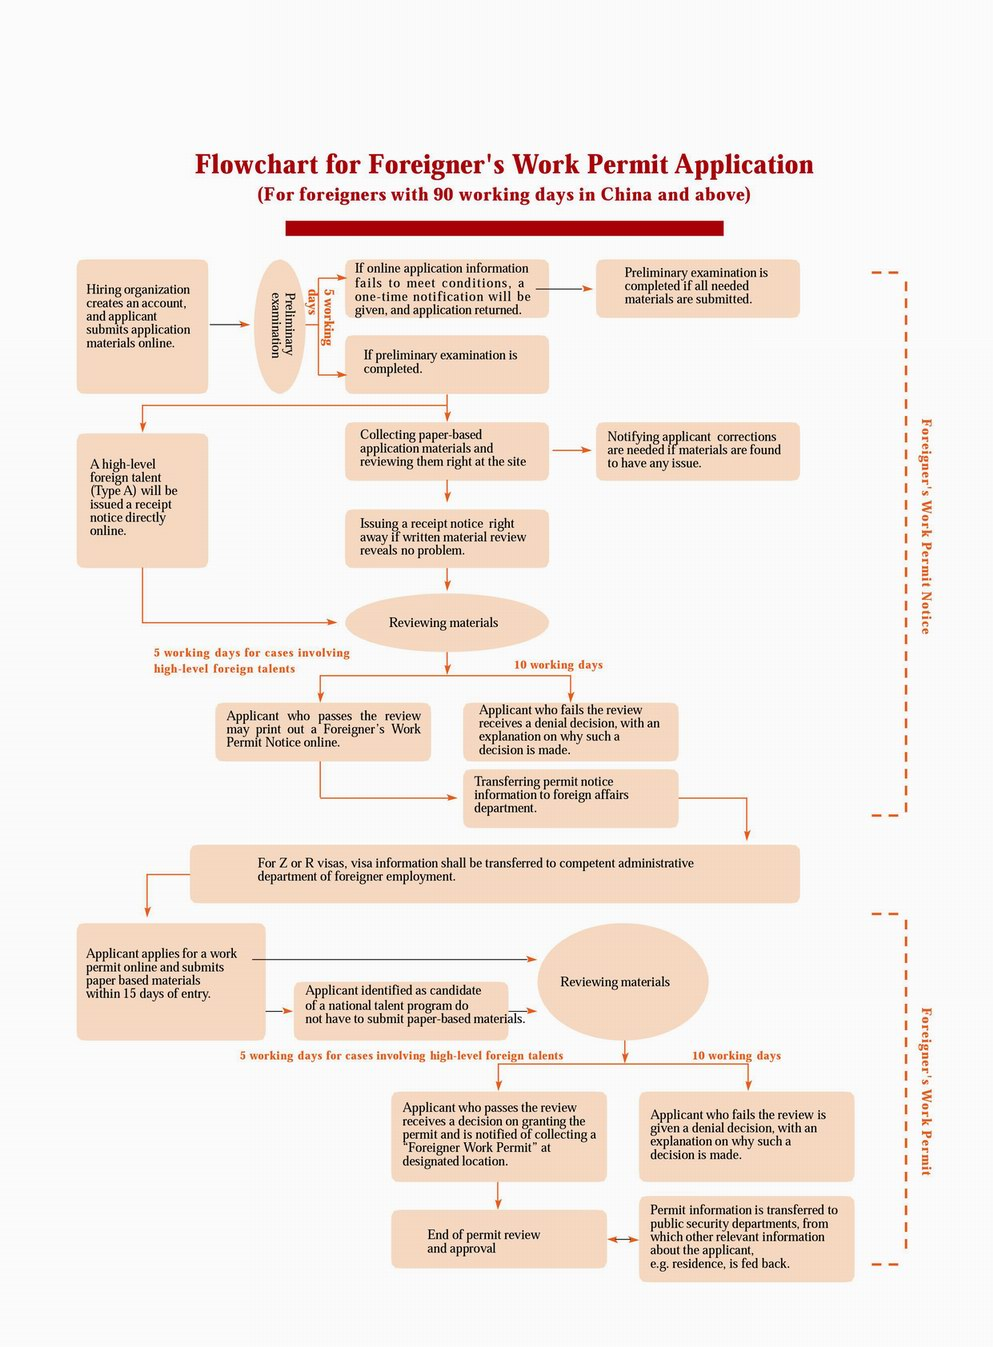 Flowchart for Foreigner's Work Permit in China Application